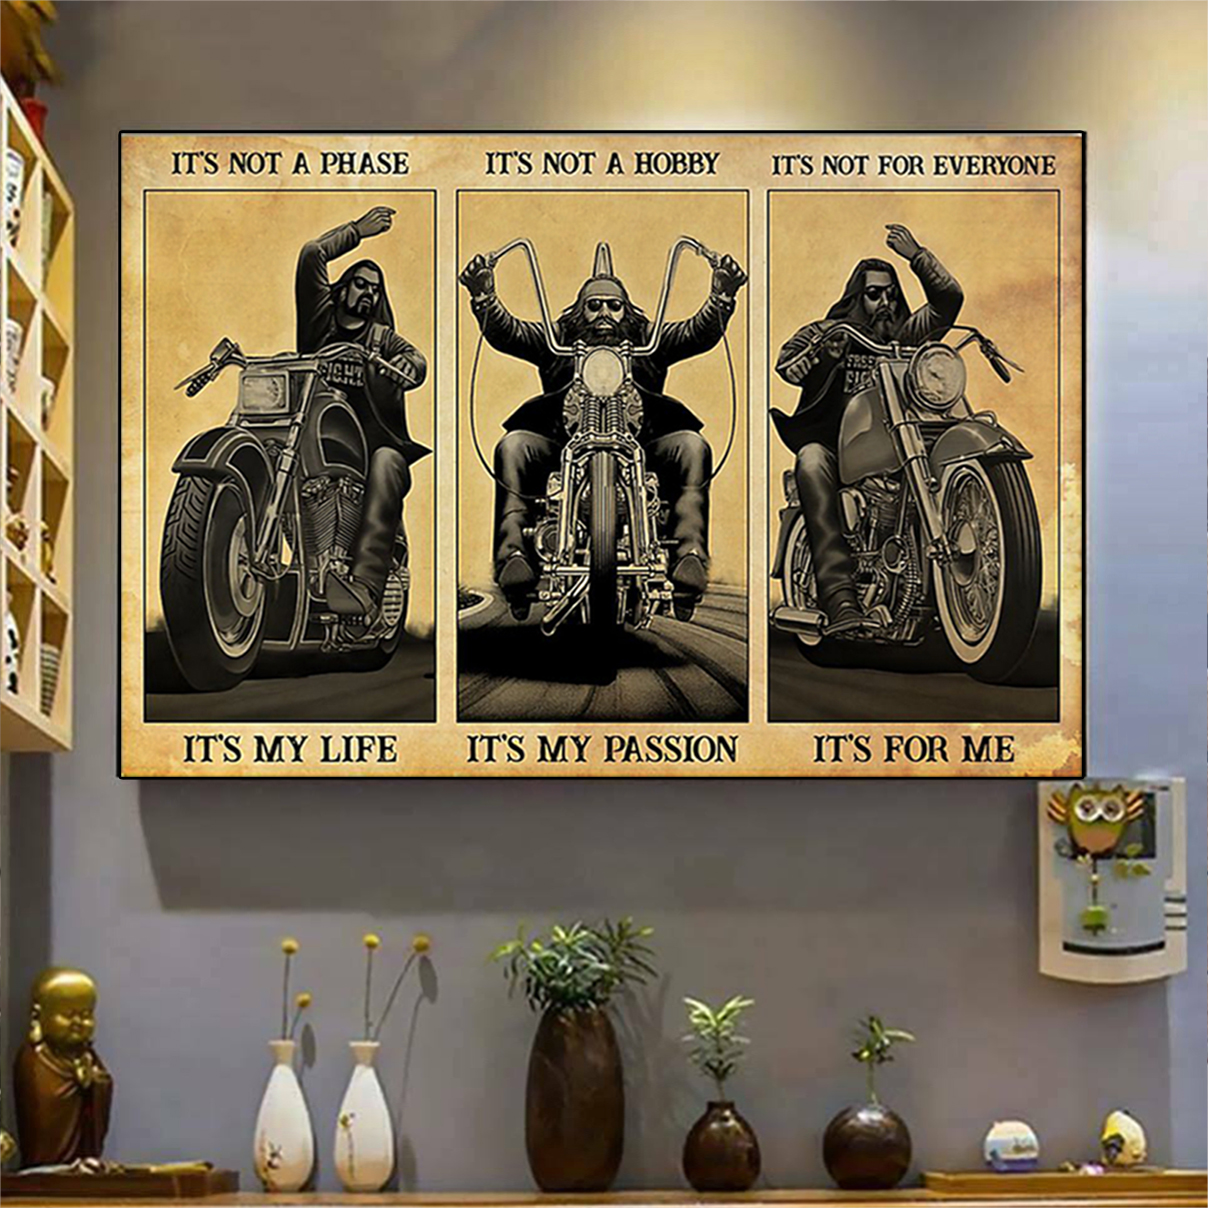 Man motorcycle it's not a phase it's my life poster A3